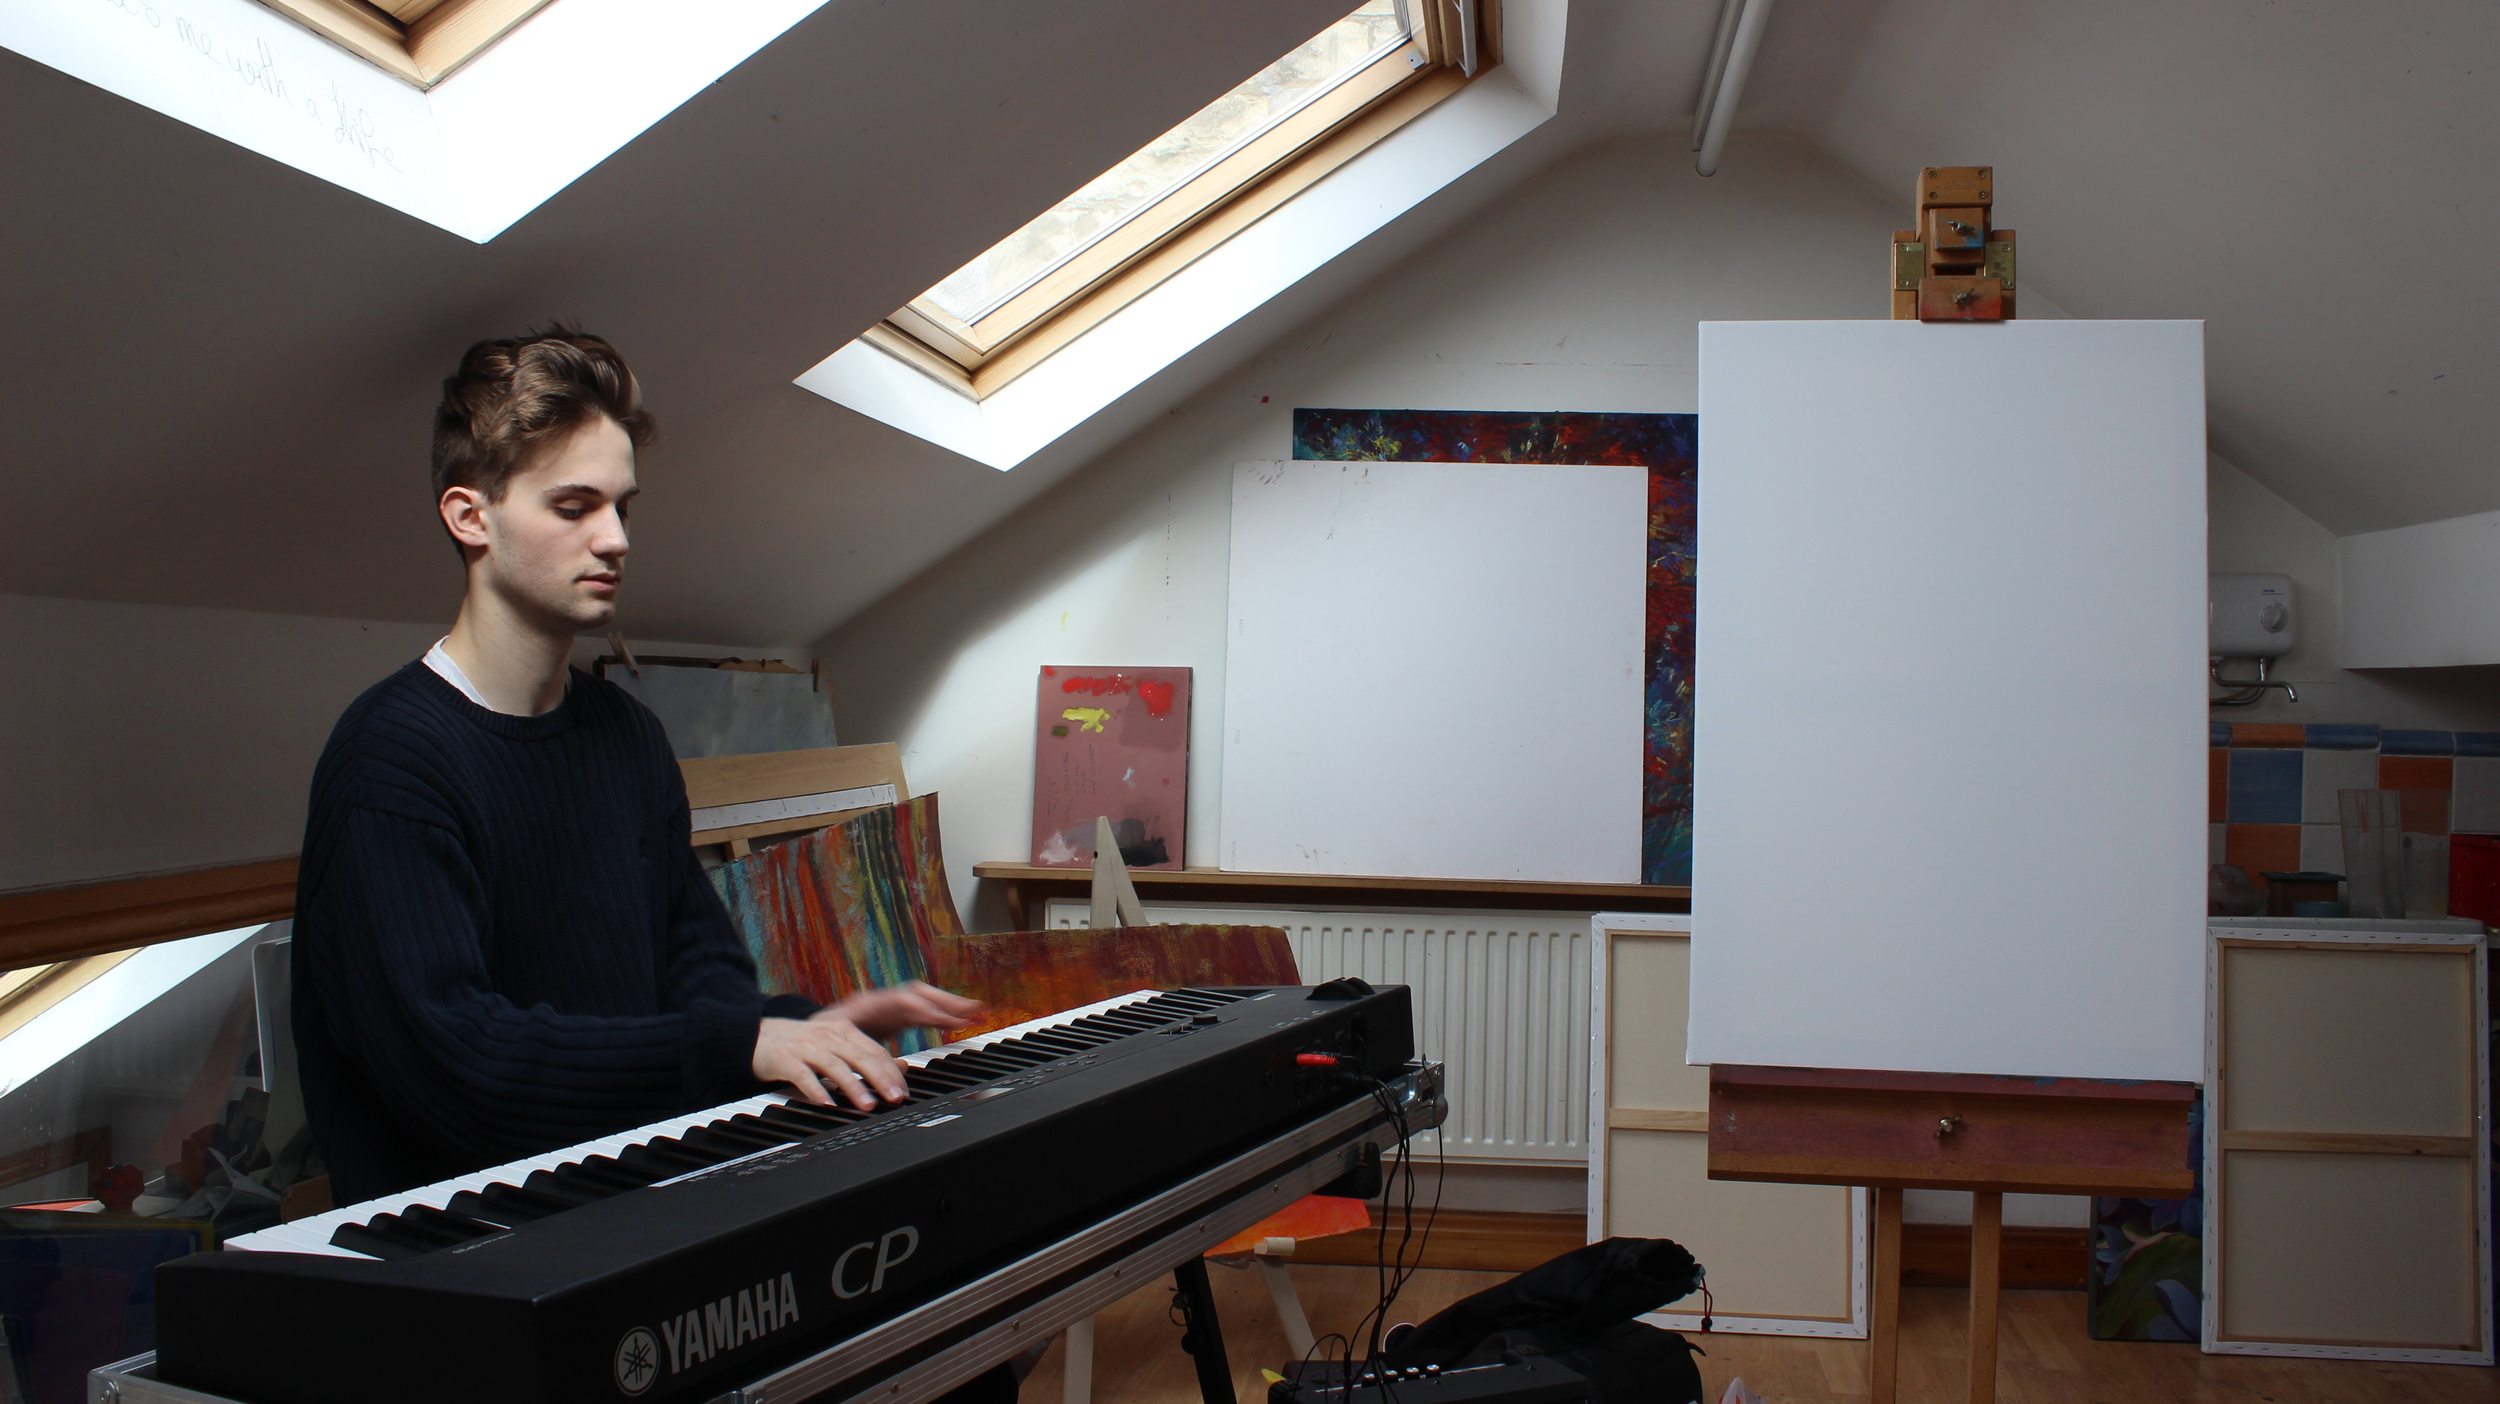 Arthur plays Debussy during a painting and music session with Steve at Nel Whatmore's home studio